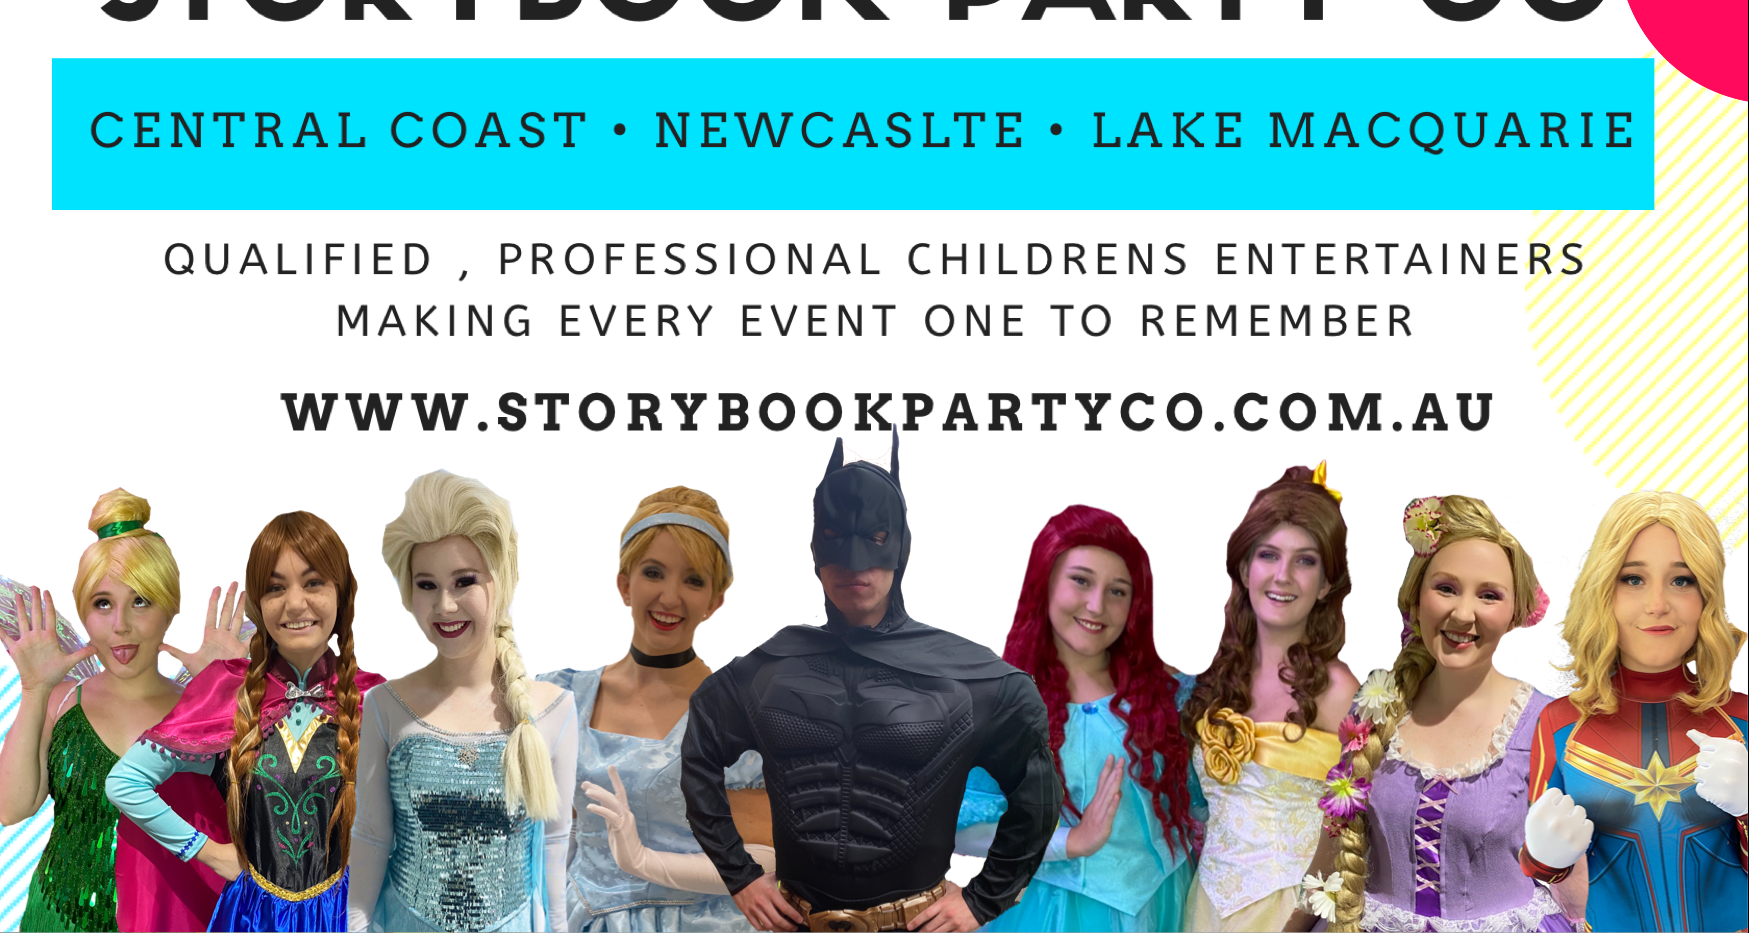 Storybook party co